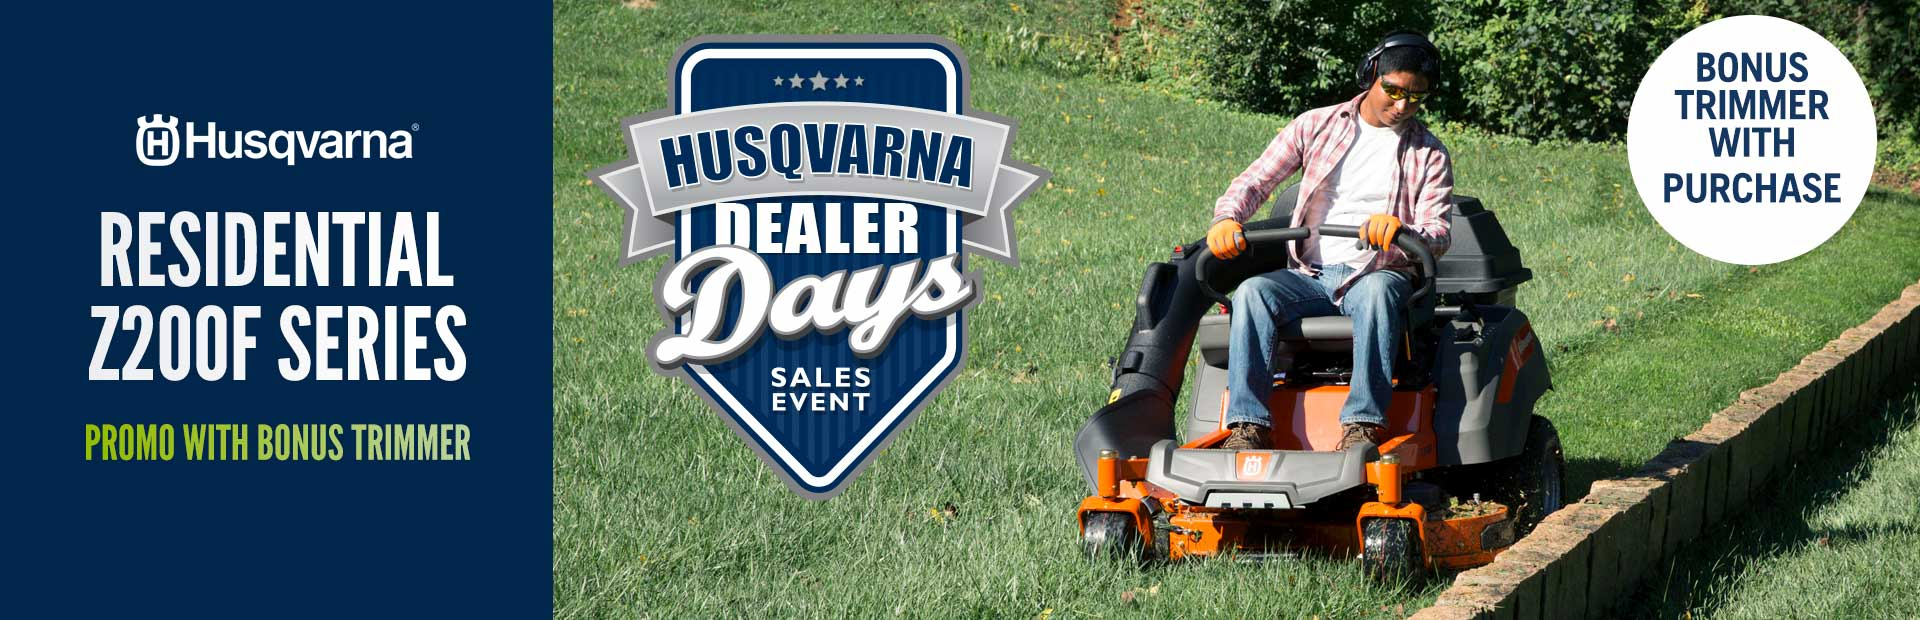 Husqvarna: Residential Z200F Series Promo with Bonus Trimmer